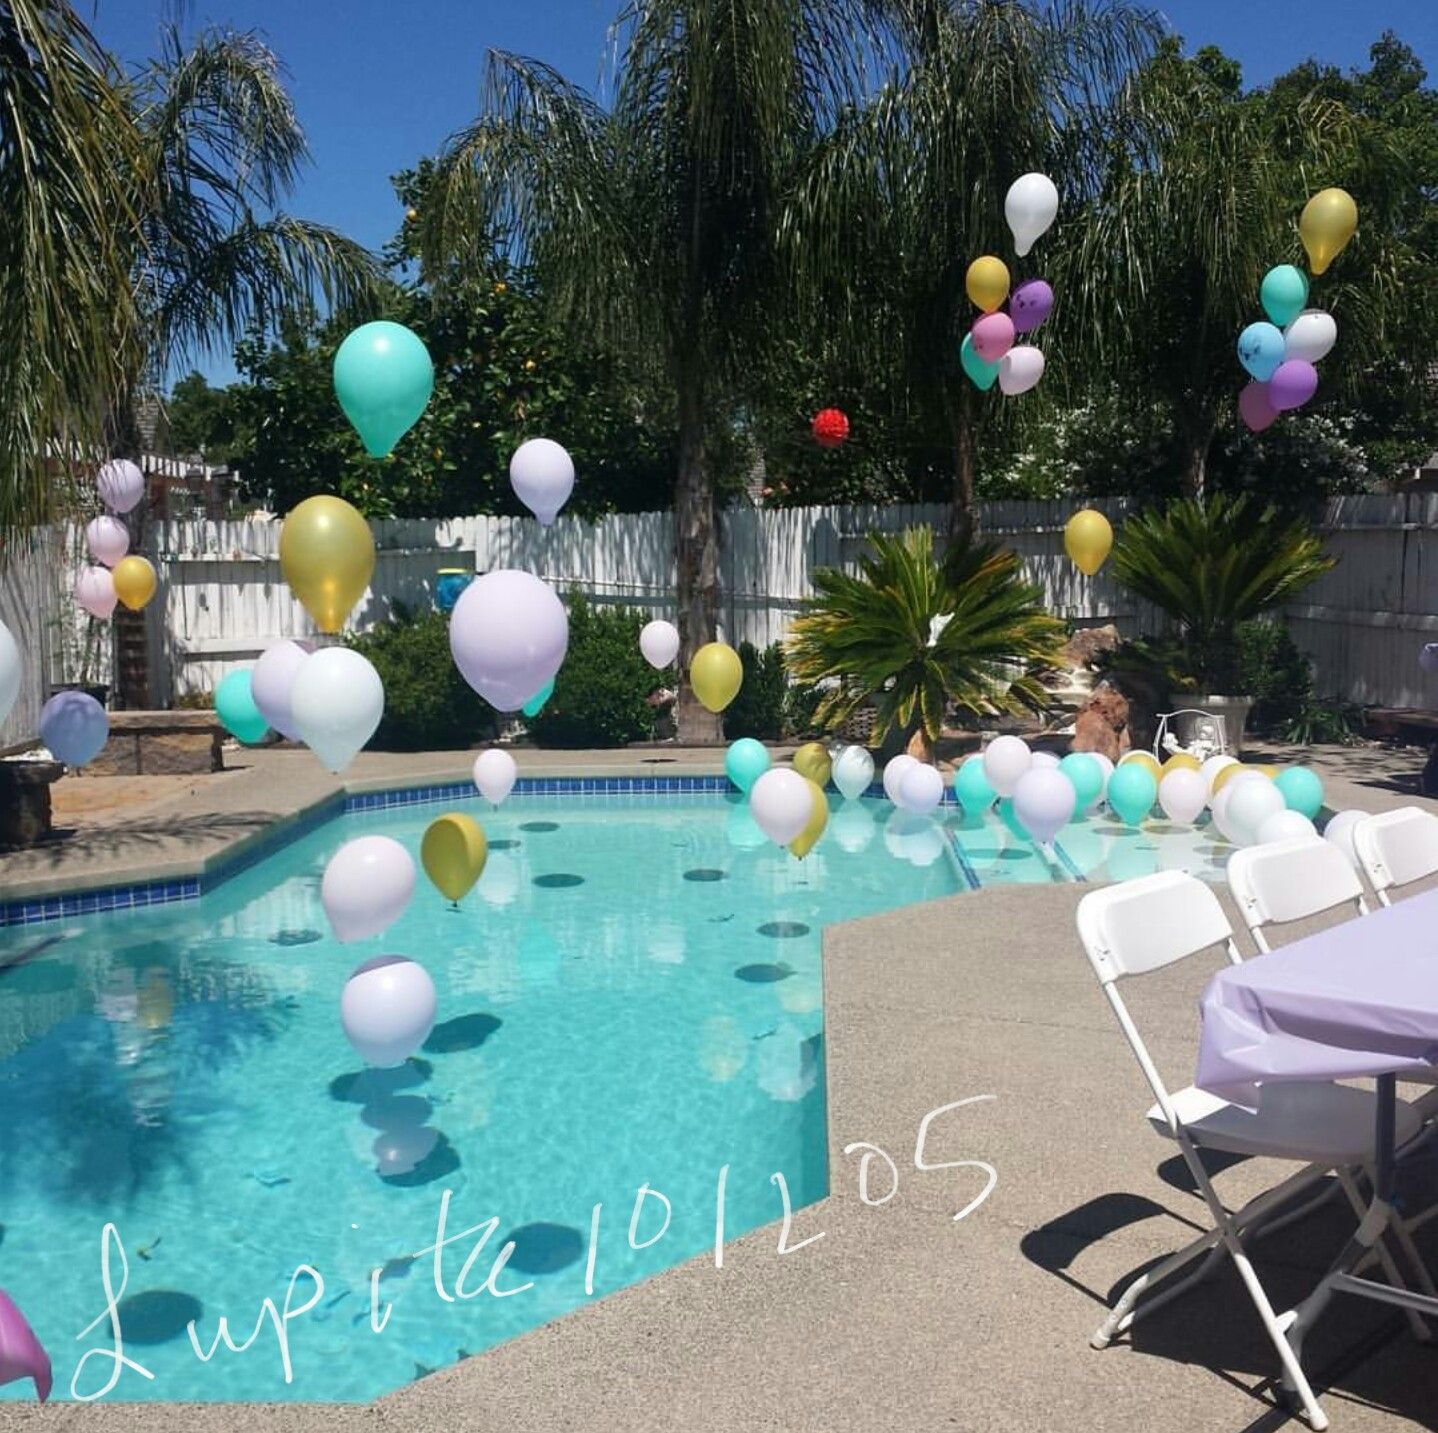 Pool Party Balloons Sweet 16 Pool Party Outfits Backyard Pool Parties Backyard Party Decorations